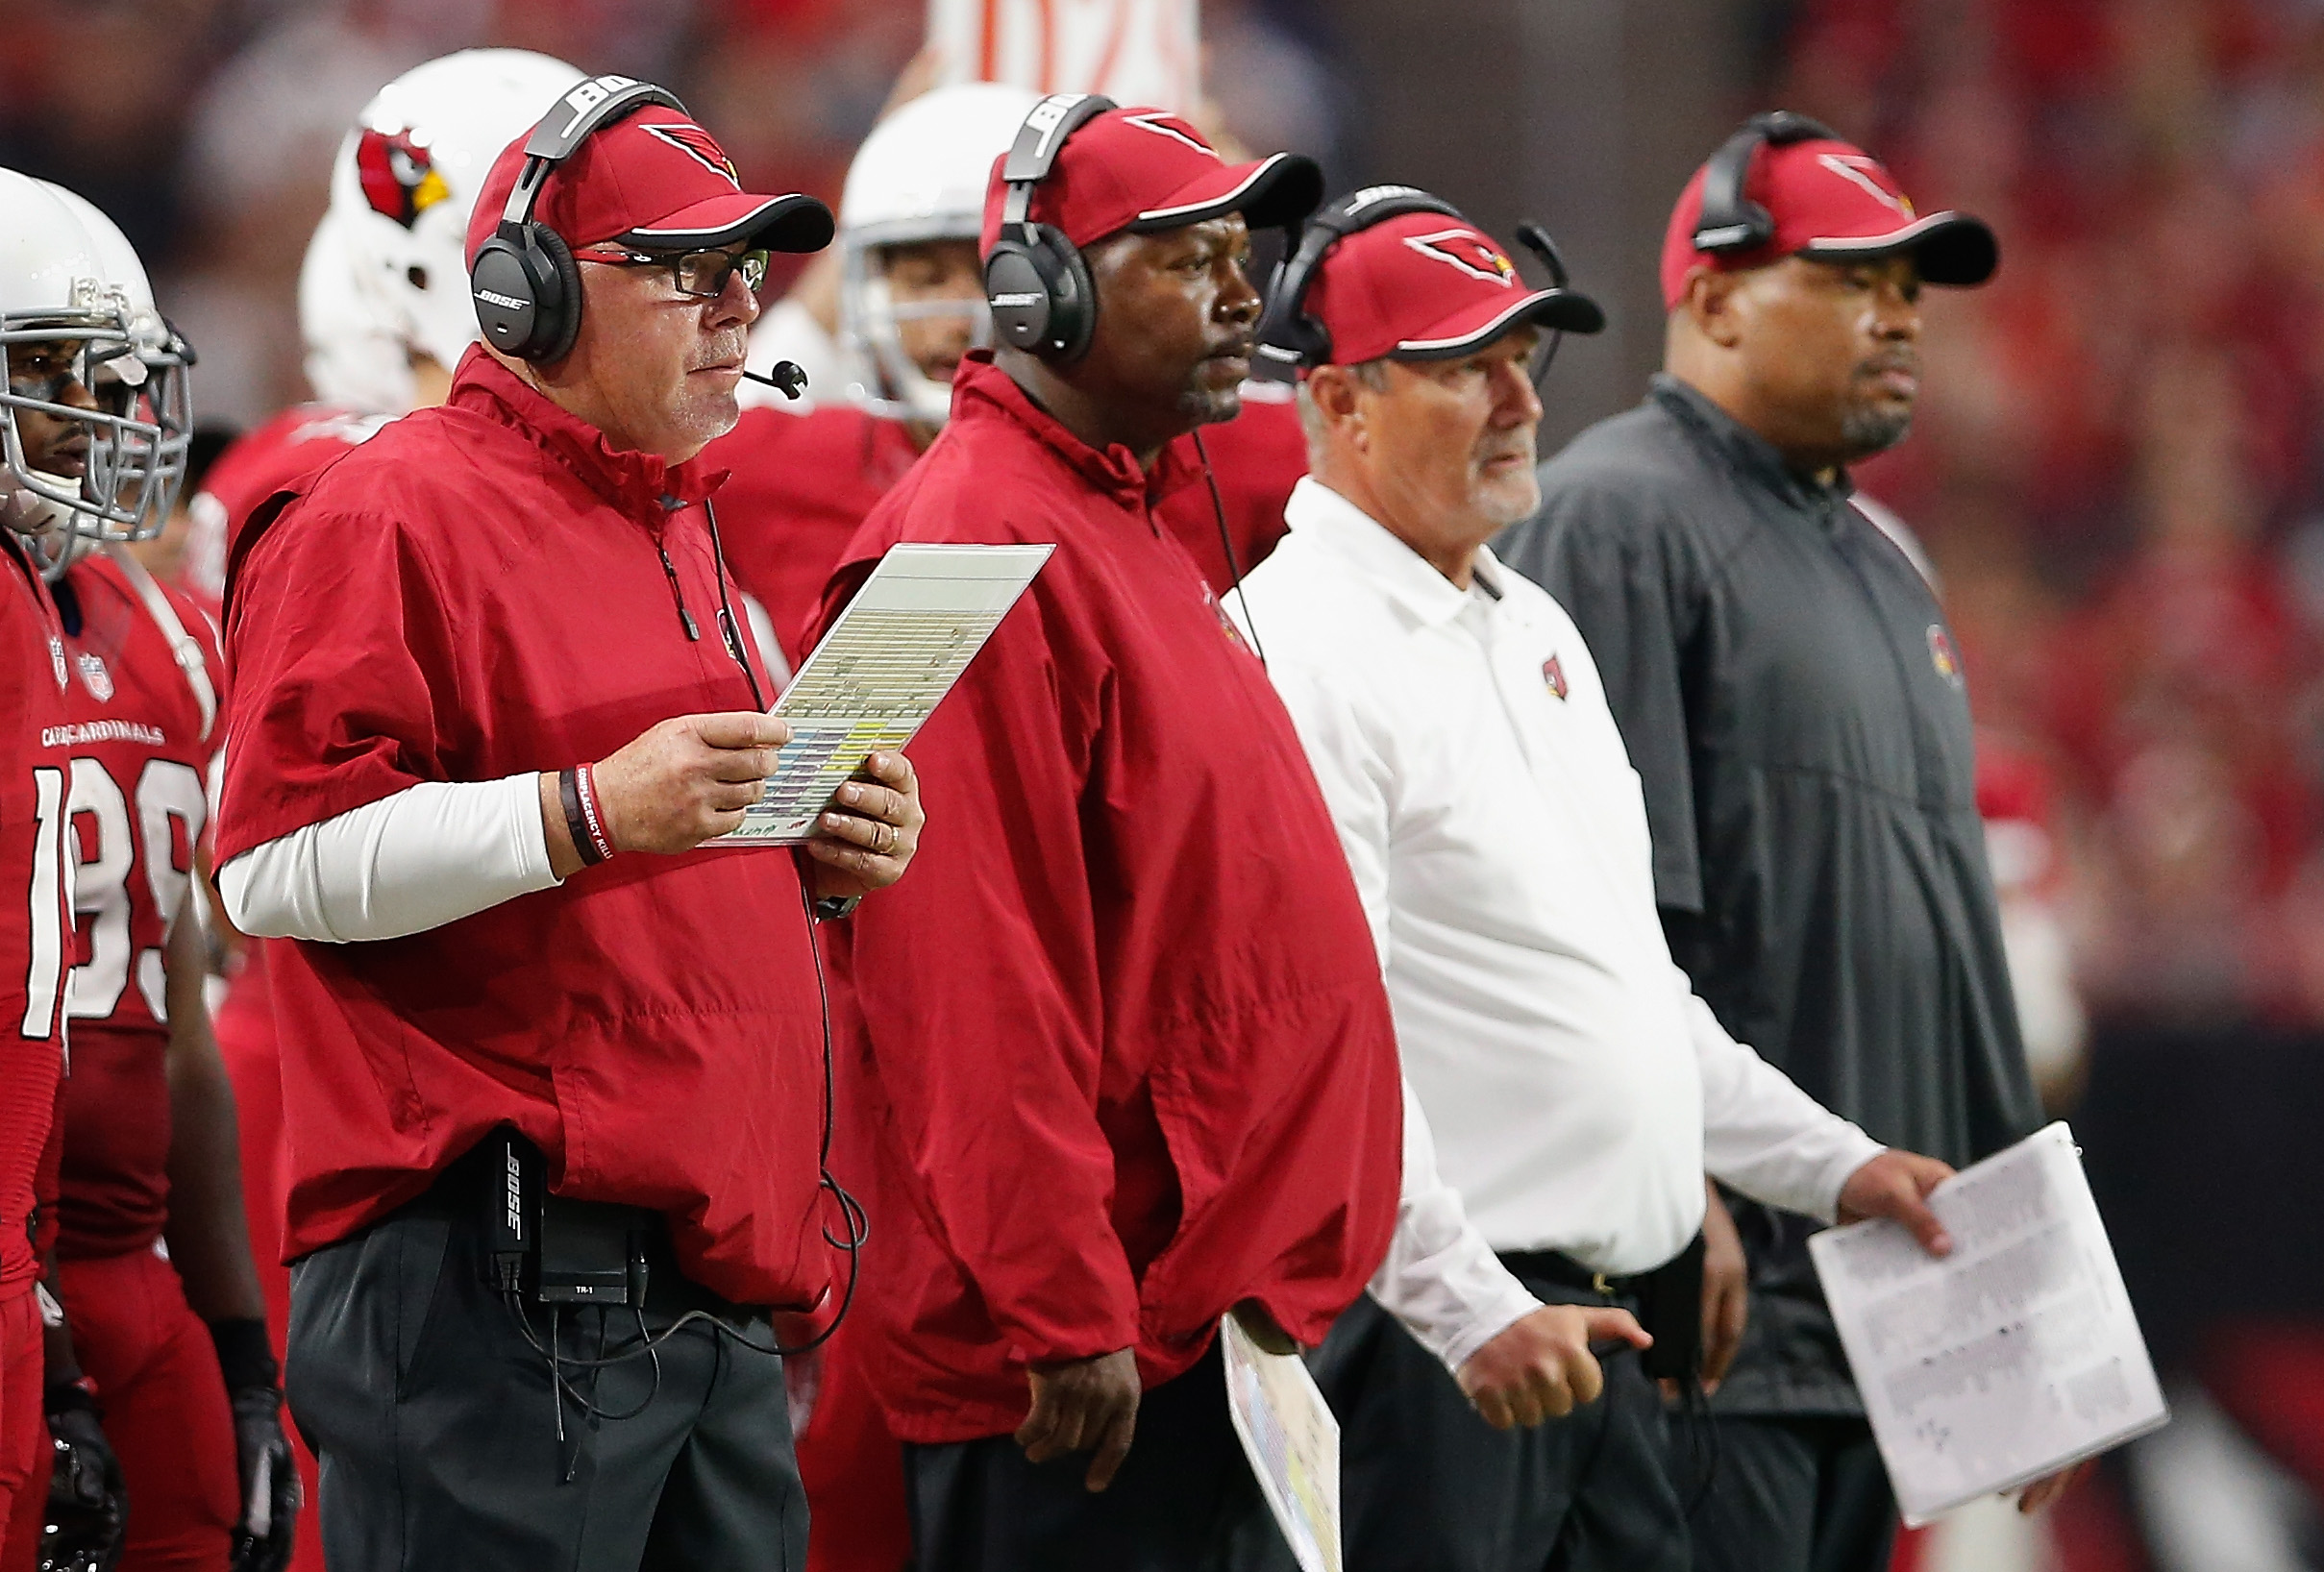 Arizona Cardinals: With Arians gone, eyes now on Fitz